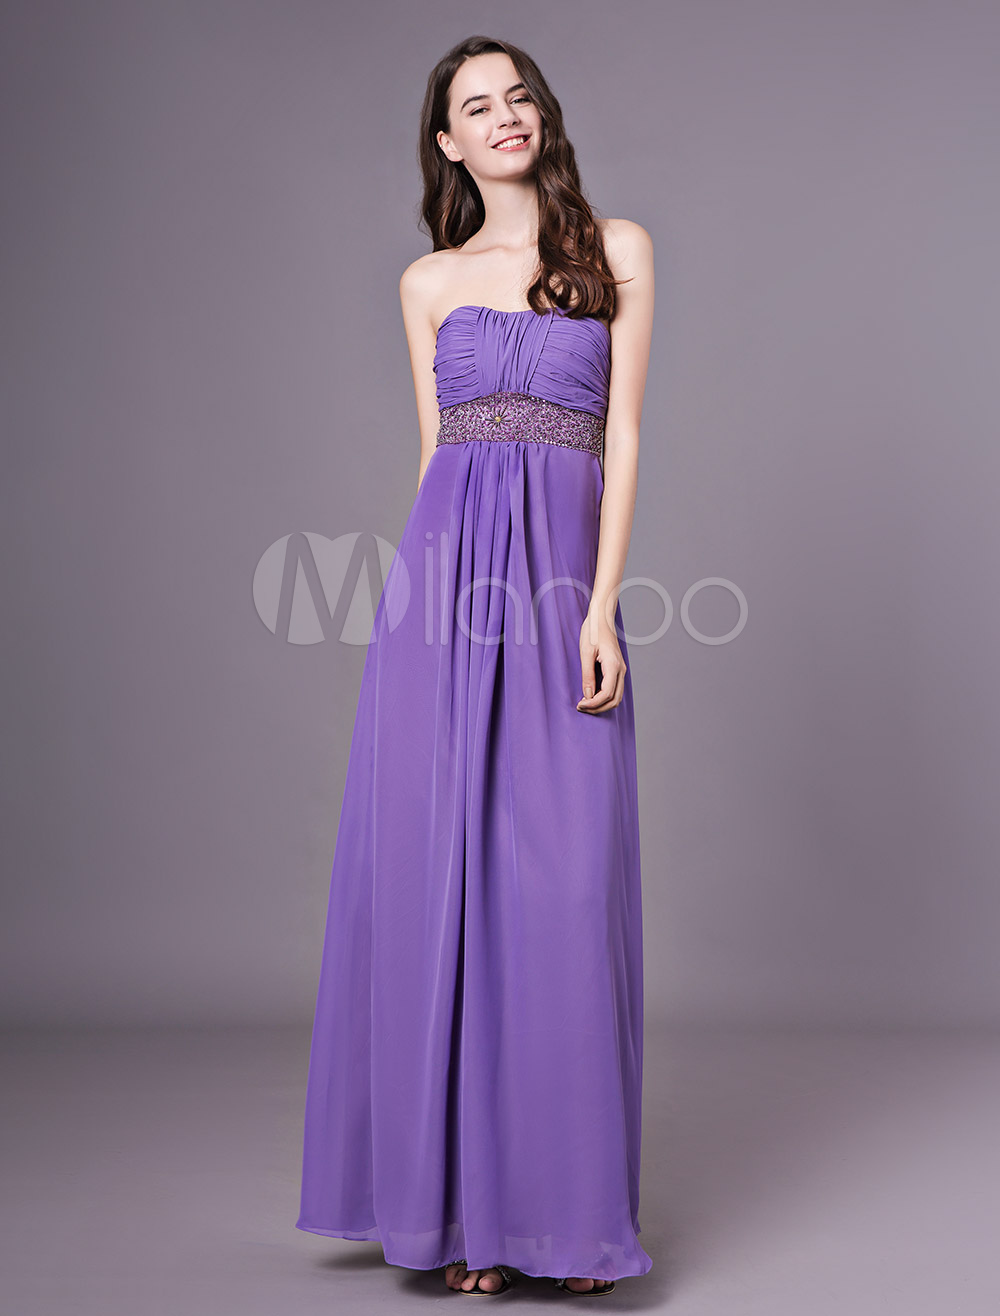 432a713290665 Lavender Strapless Empire Waist Beading Chiffon Bridesmaid Dress ...